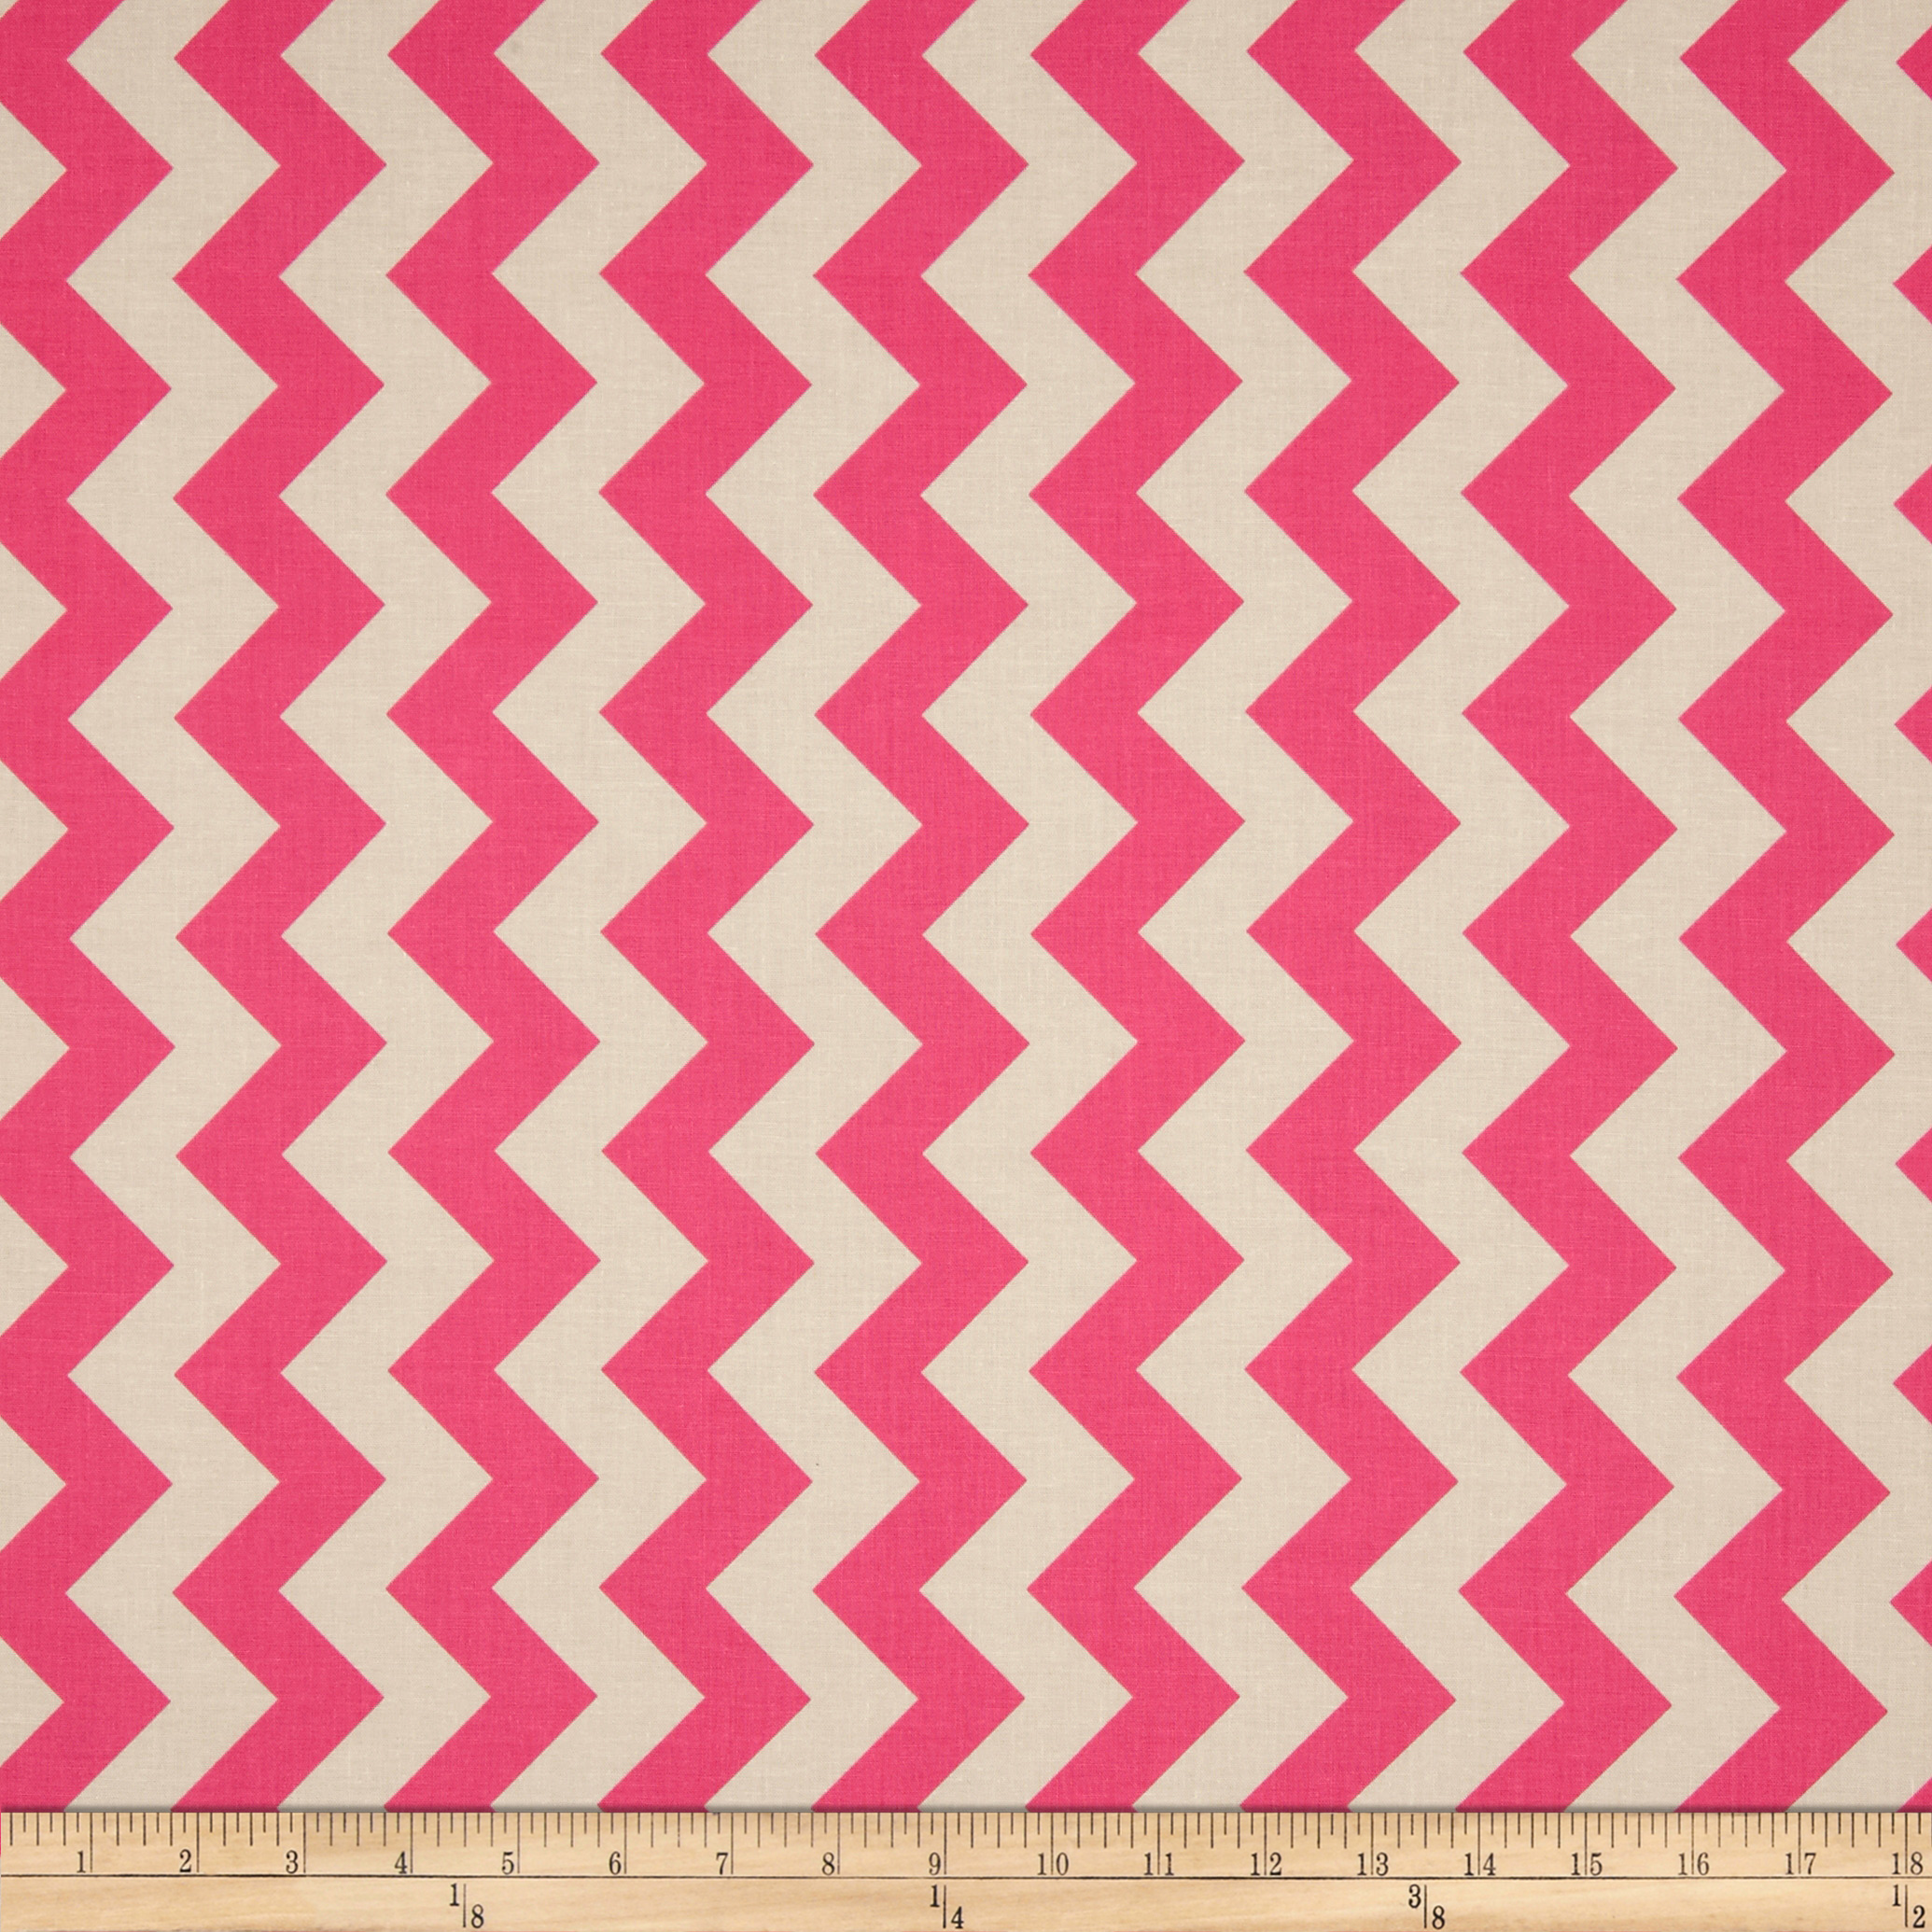 Riley Blake Le Creme Basics Chevron Hot Pink/Cream